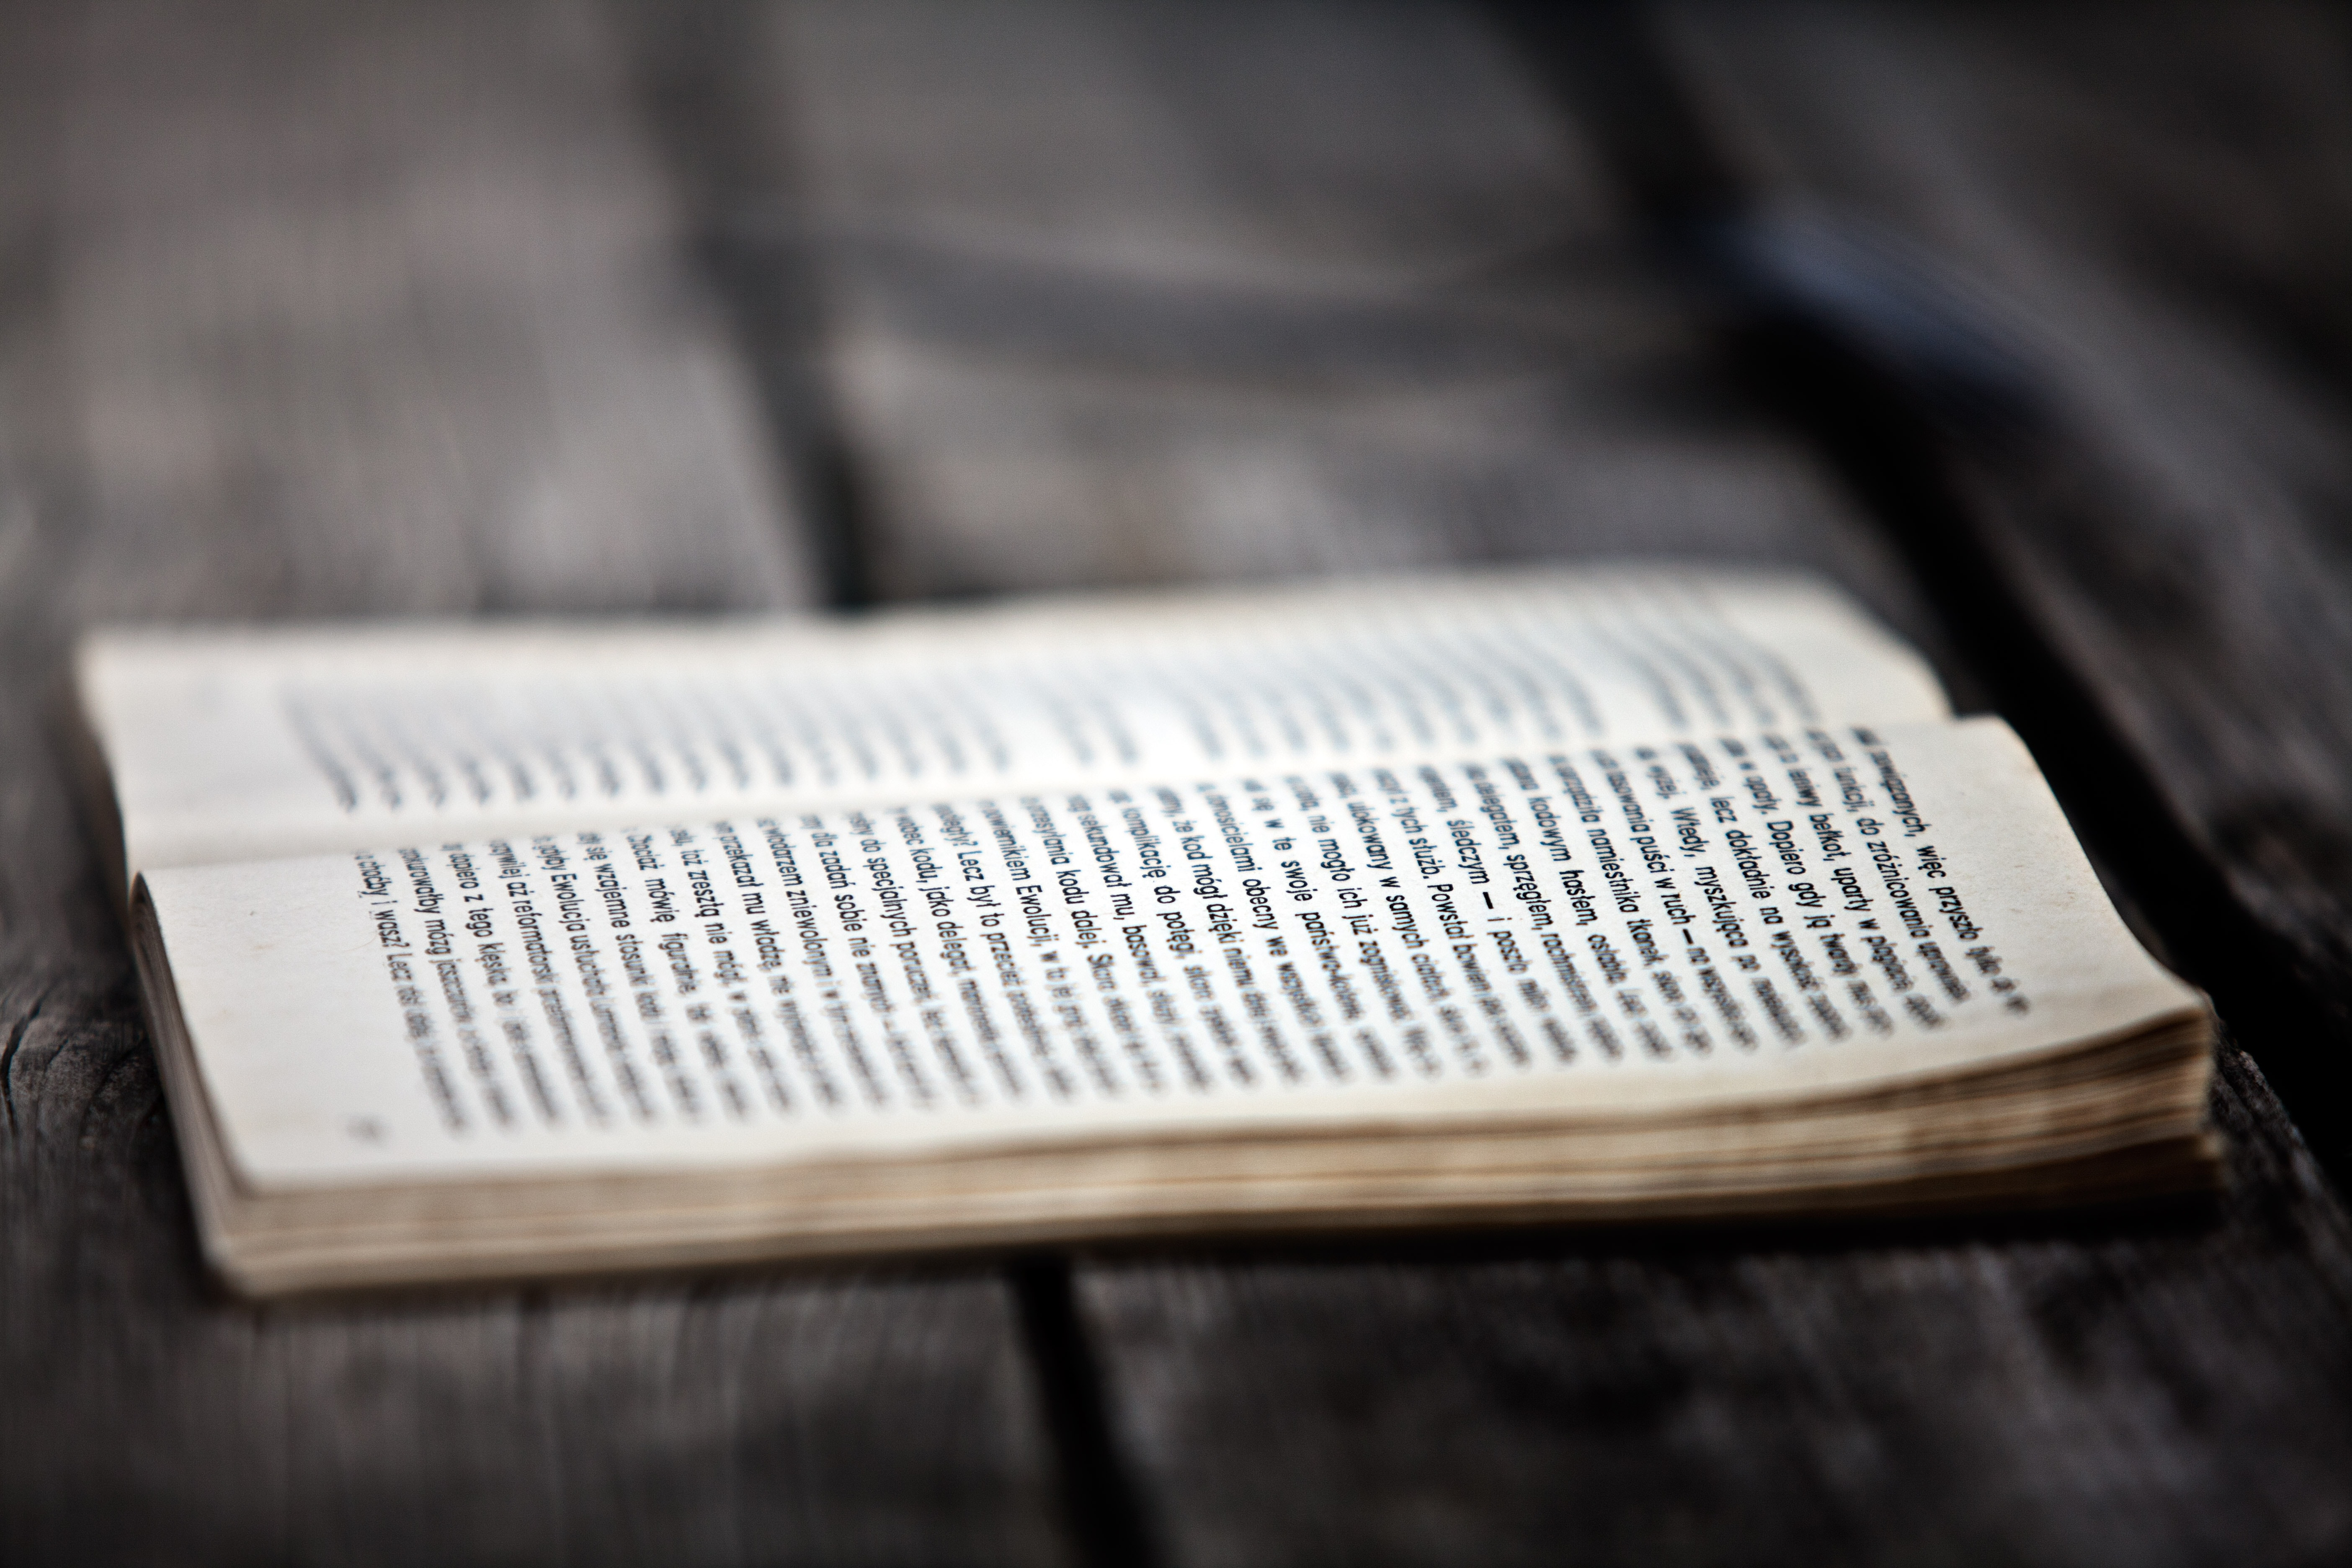 Opened book on wooden board photo